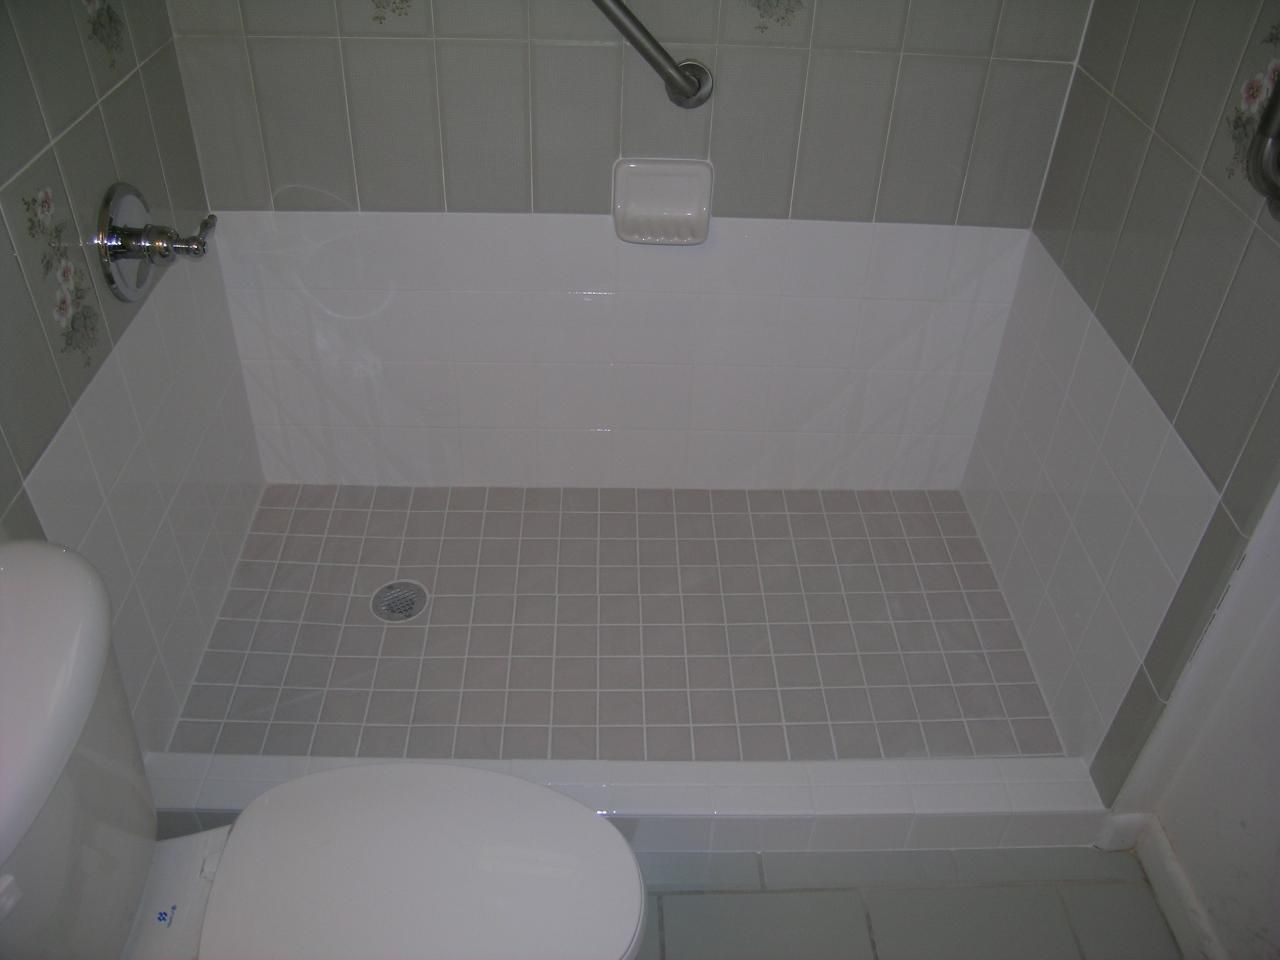 shower tub | economy tub to shower conversion cast iron tub to be ...